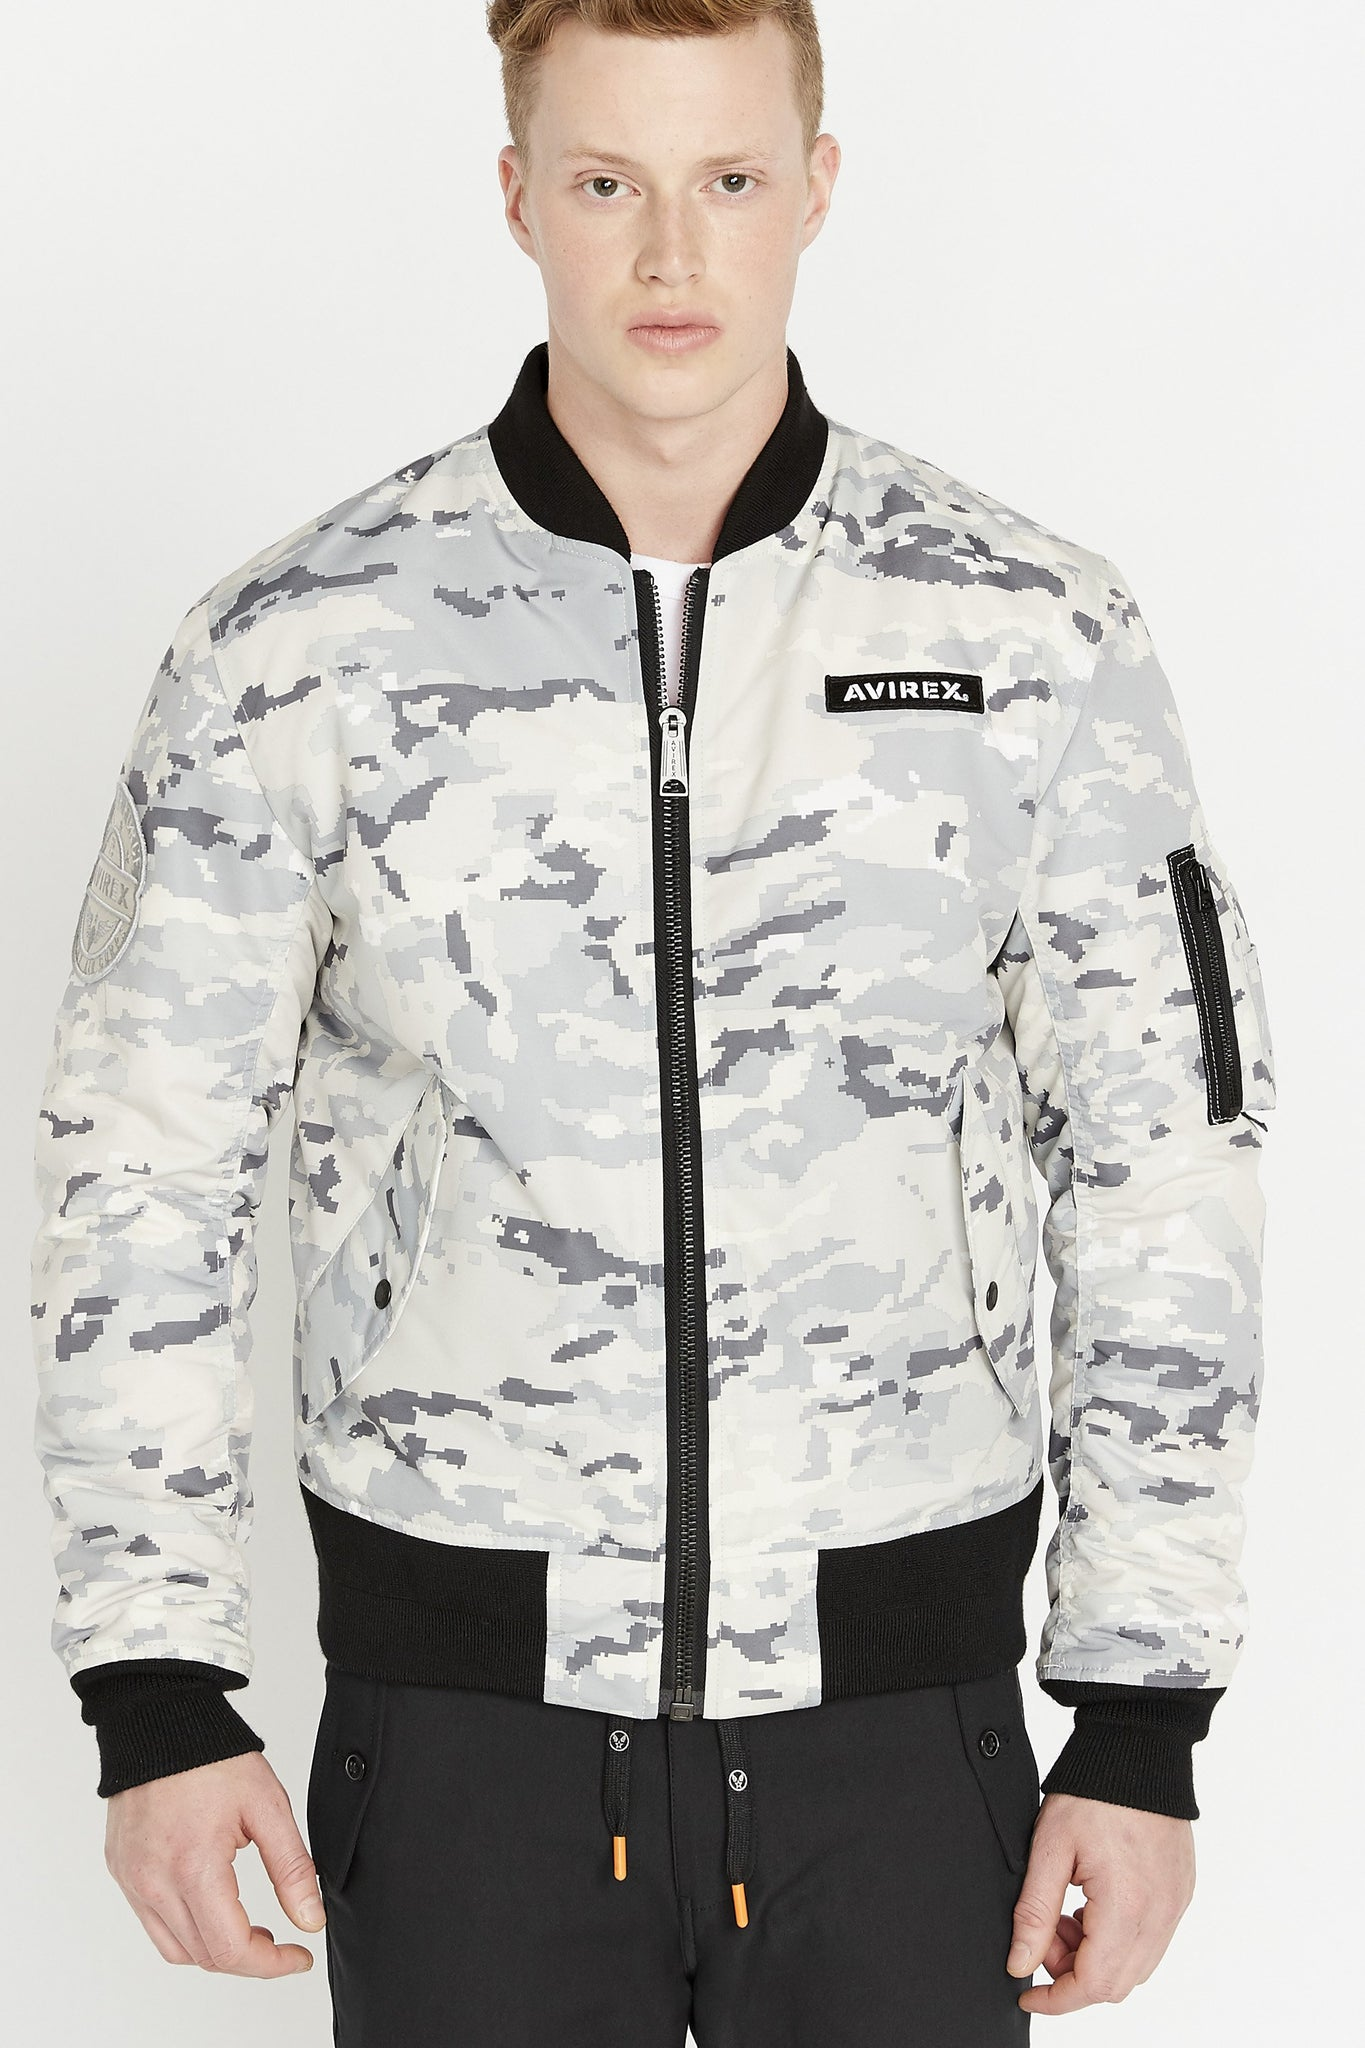 Front view of men weaing a fully zipped snow camo printed polyester bomber jacket with Avirex logo patch on the chest,  two flap pockets on the sides and one utility pocket on left sleeve